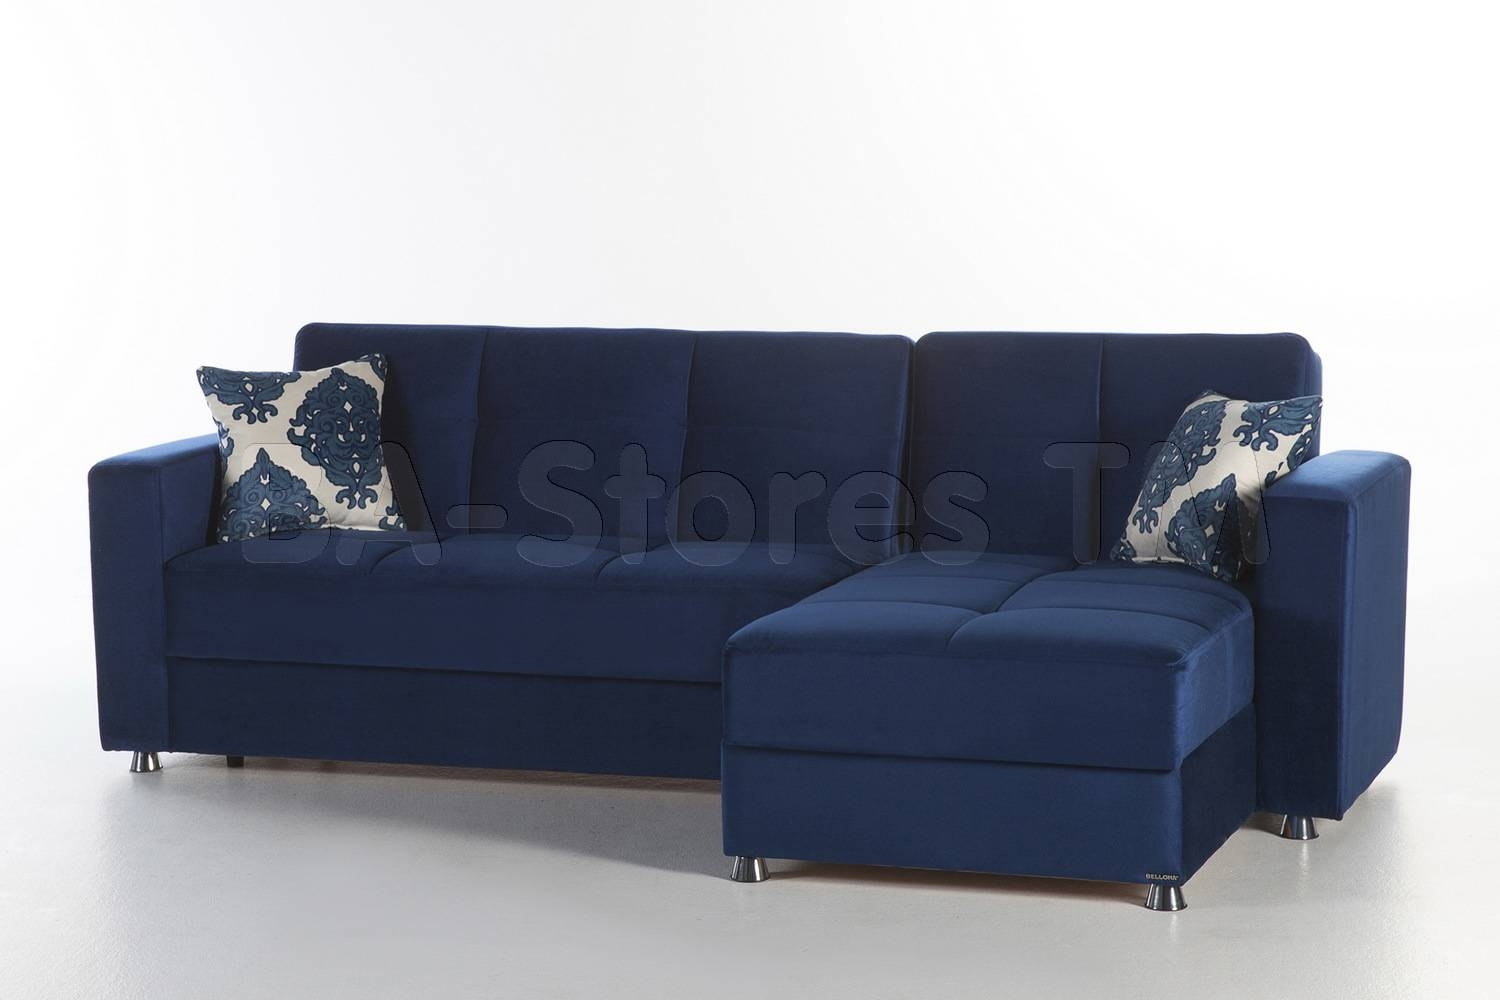 Elegant Sectional Sofa | Roma Navy | Sectional Sofas 10-Ele-N839D within Elegant Sectional Sofa (Image 12 of 25)